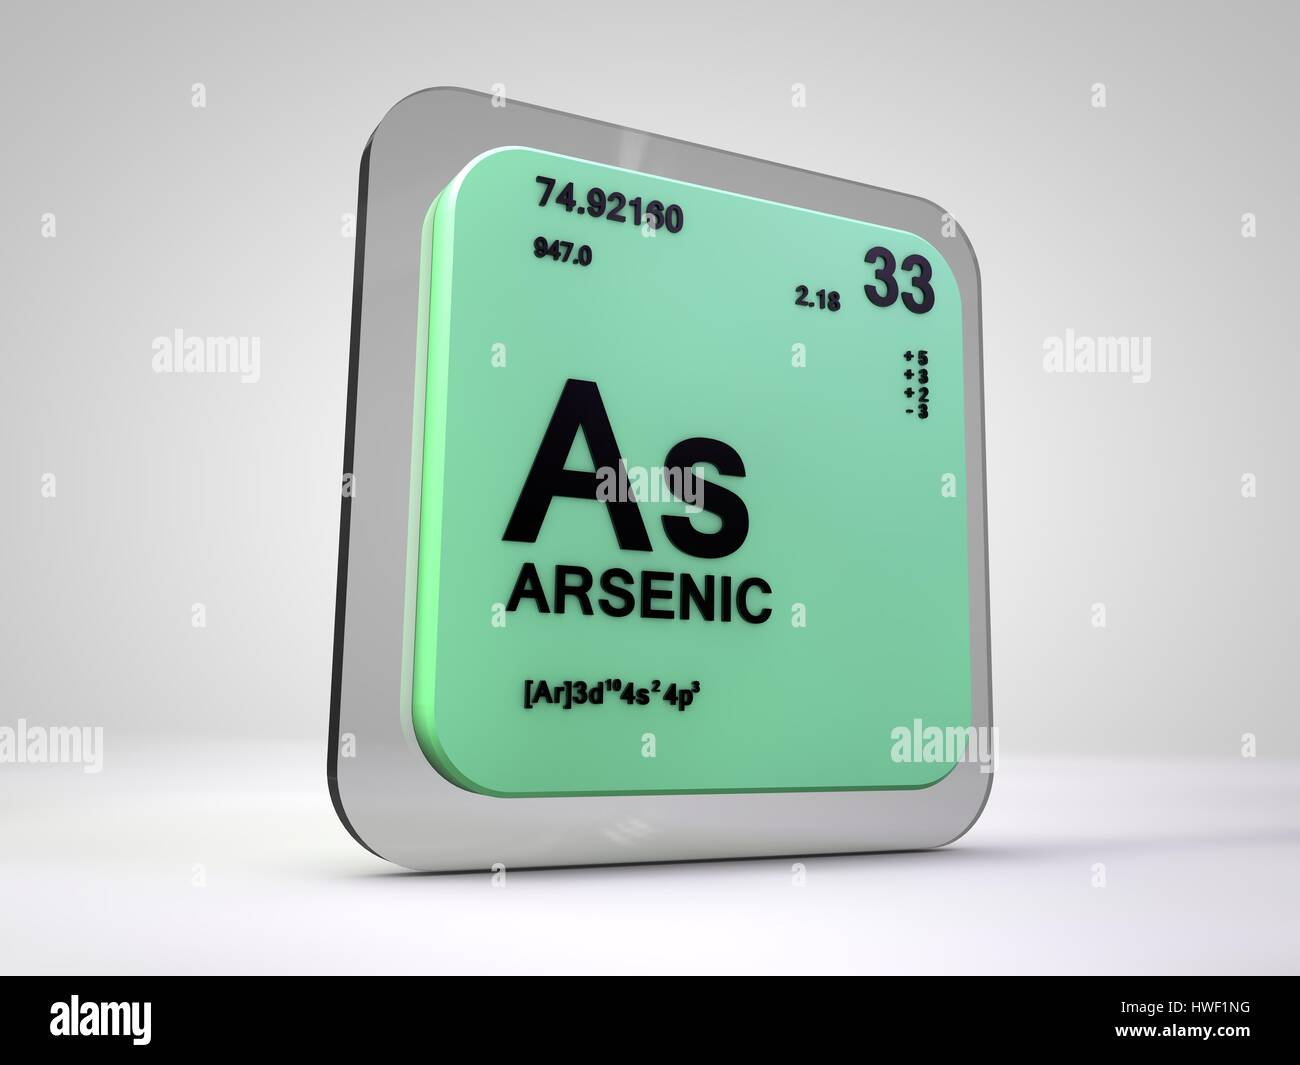 Arsenic as chemical element periodic table 3d render stock arsenic as chemical element periodic table 3d render biocorpaavc Image collections